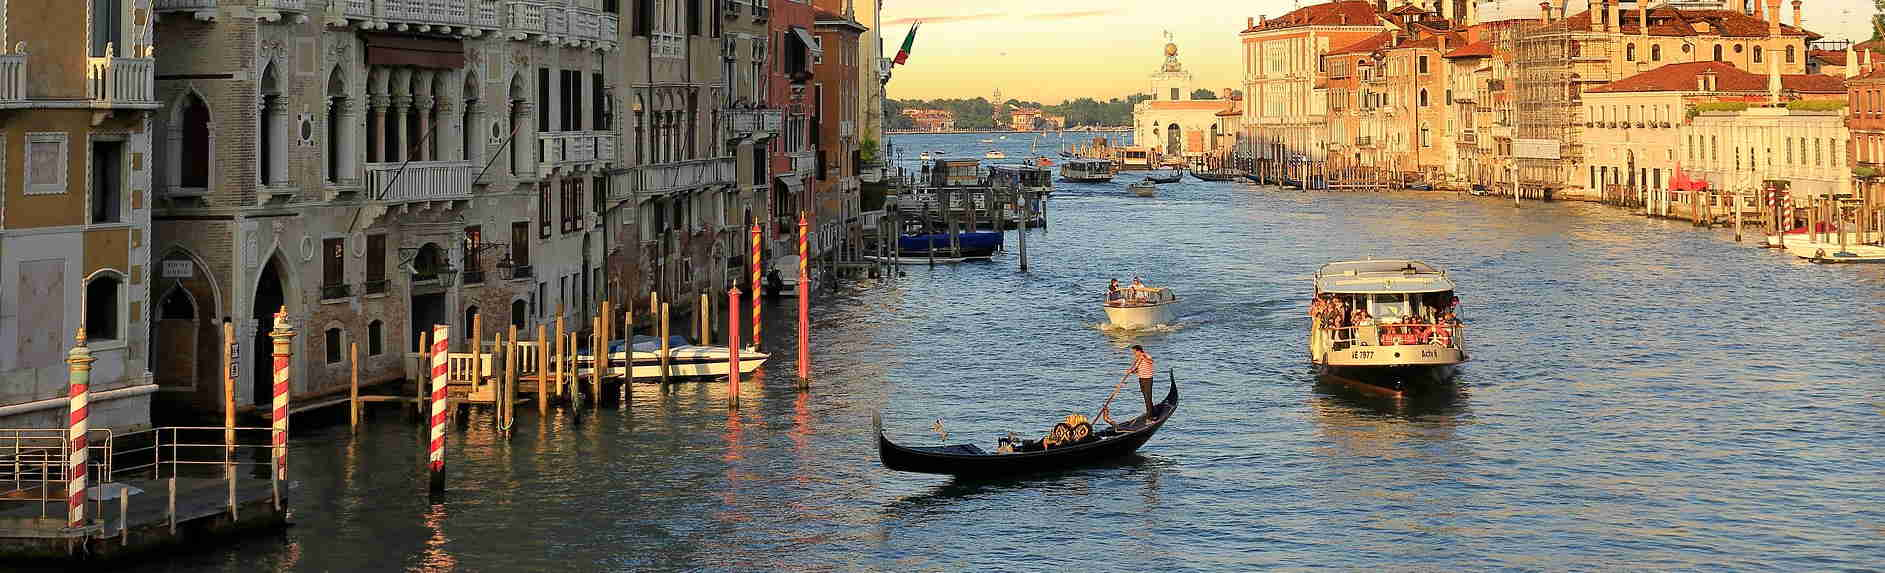 The history of quarantine and Venice